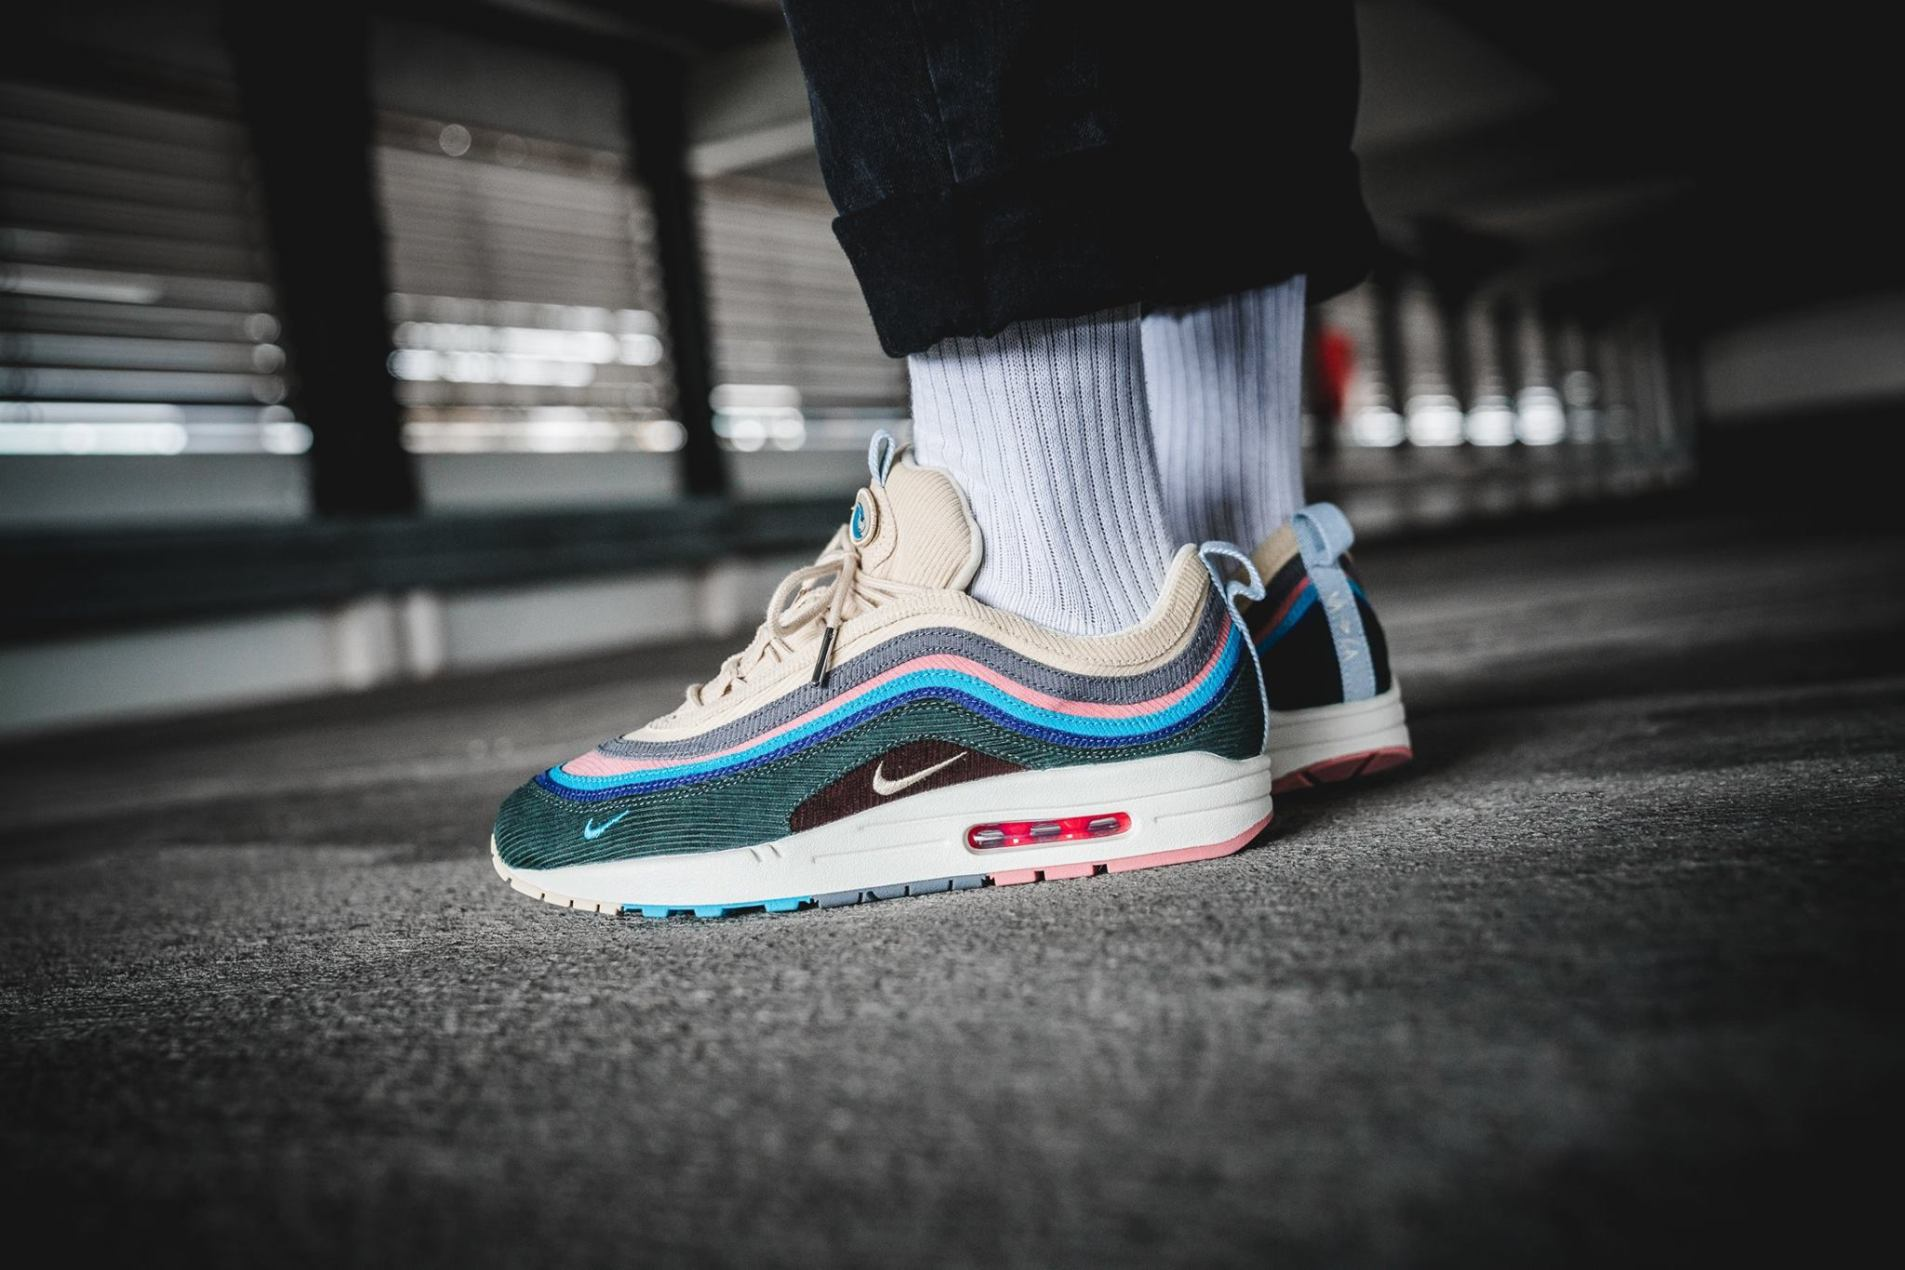 Nike-Air-Max-197-Sean-Wotherspoon-5